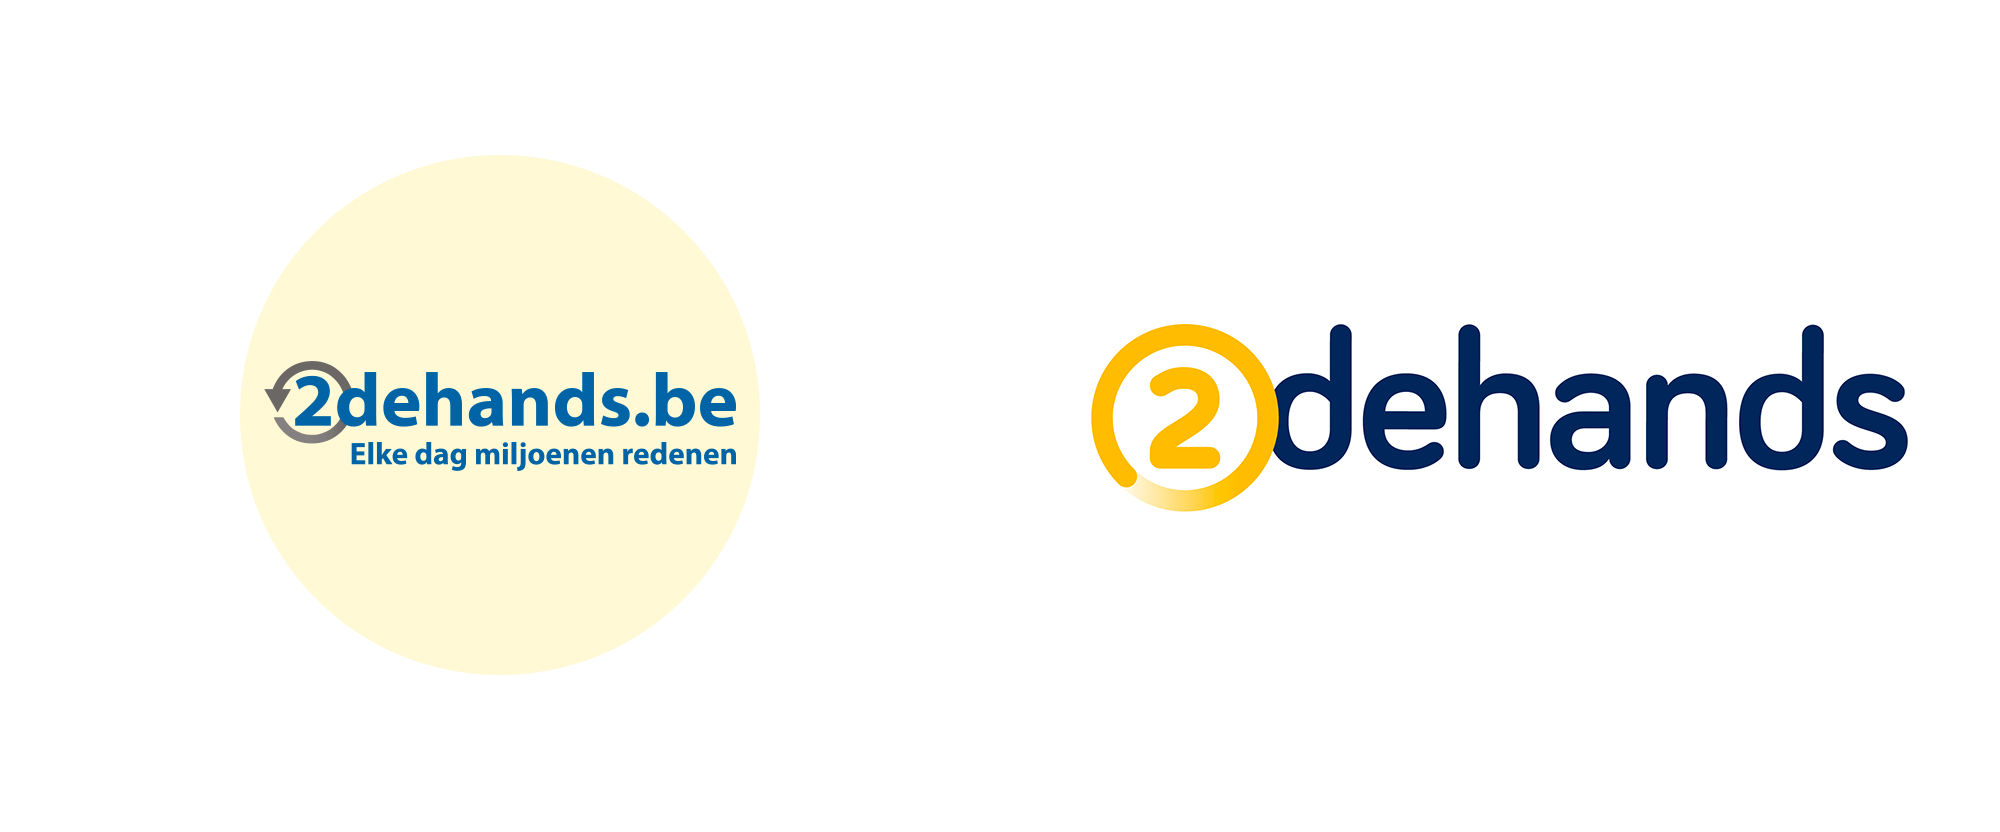 New Logo for 2dehands by Happiness Brussels